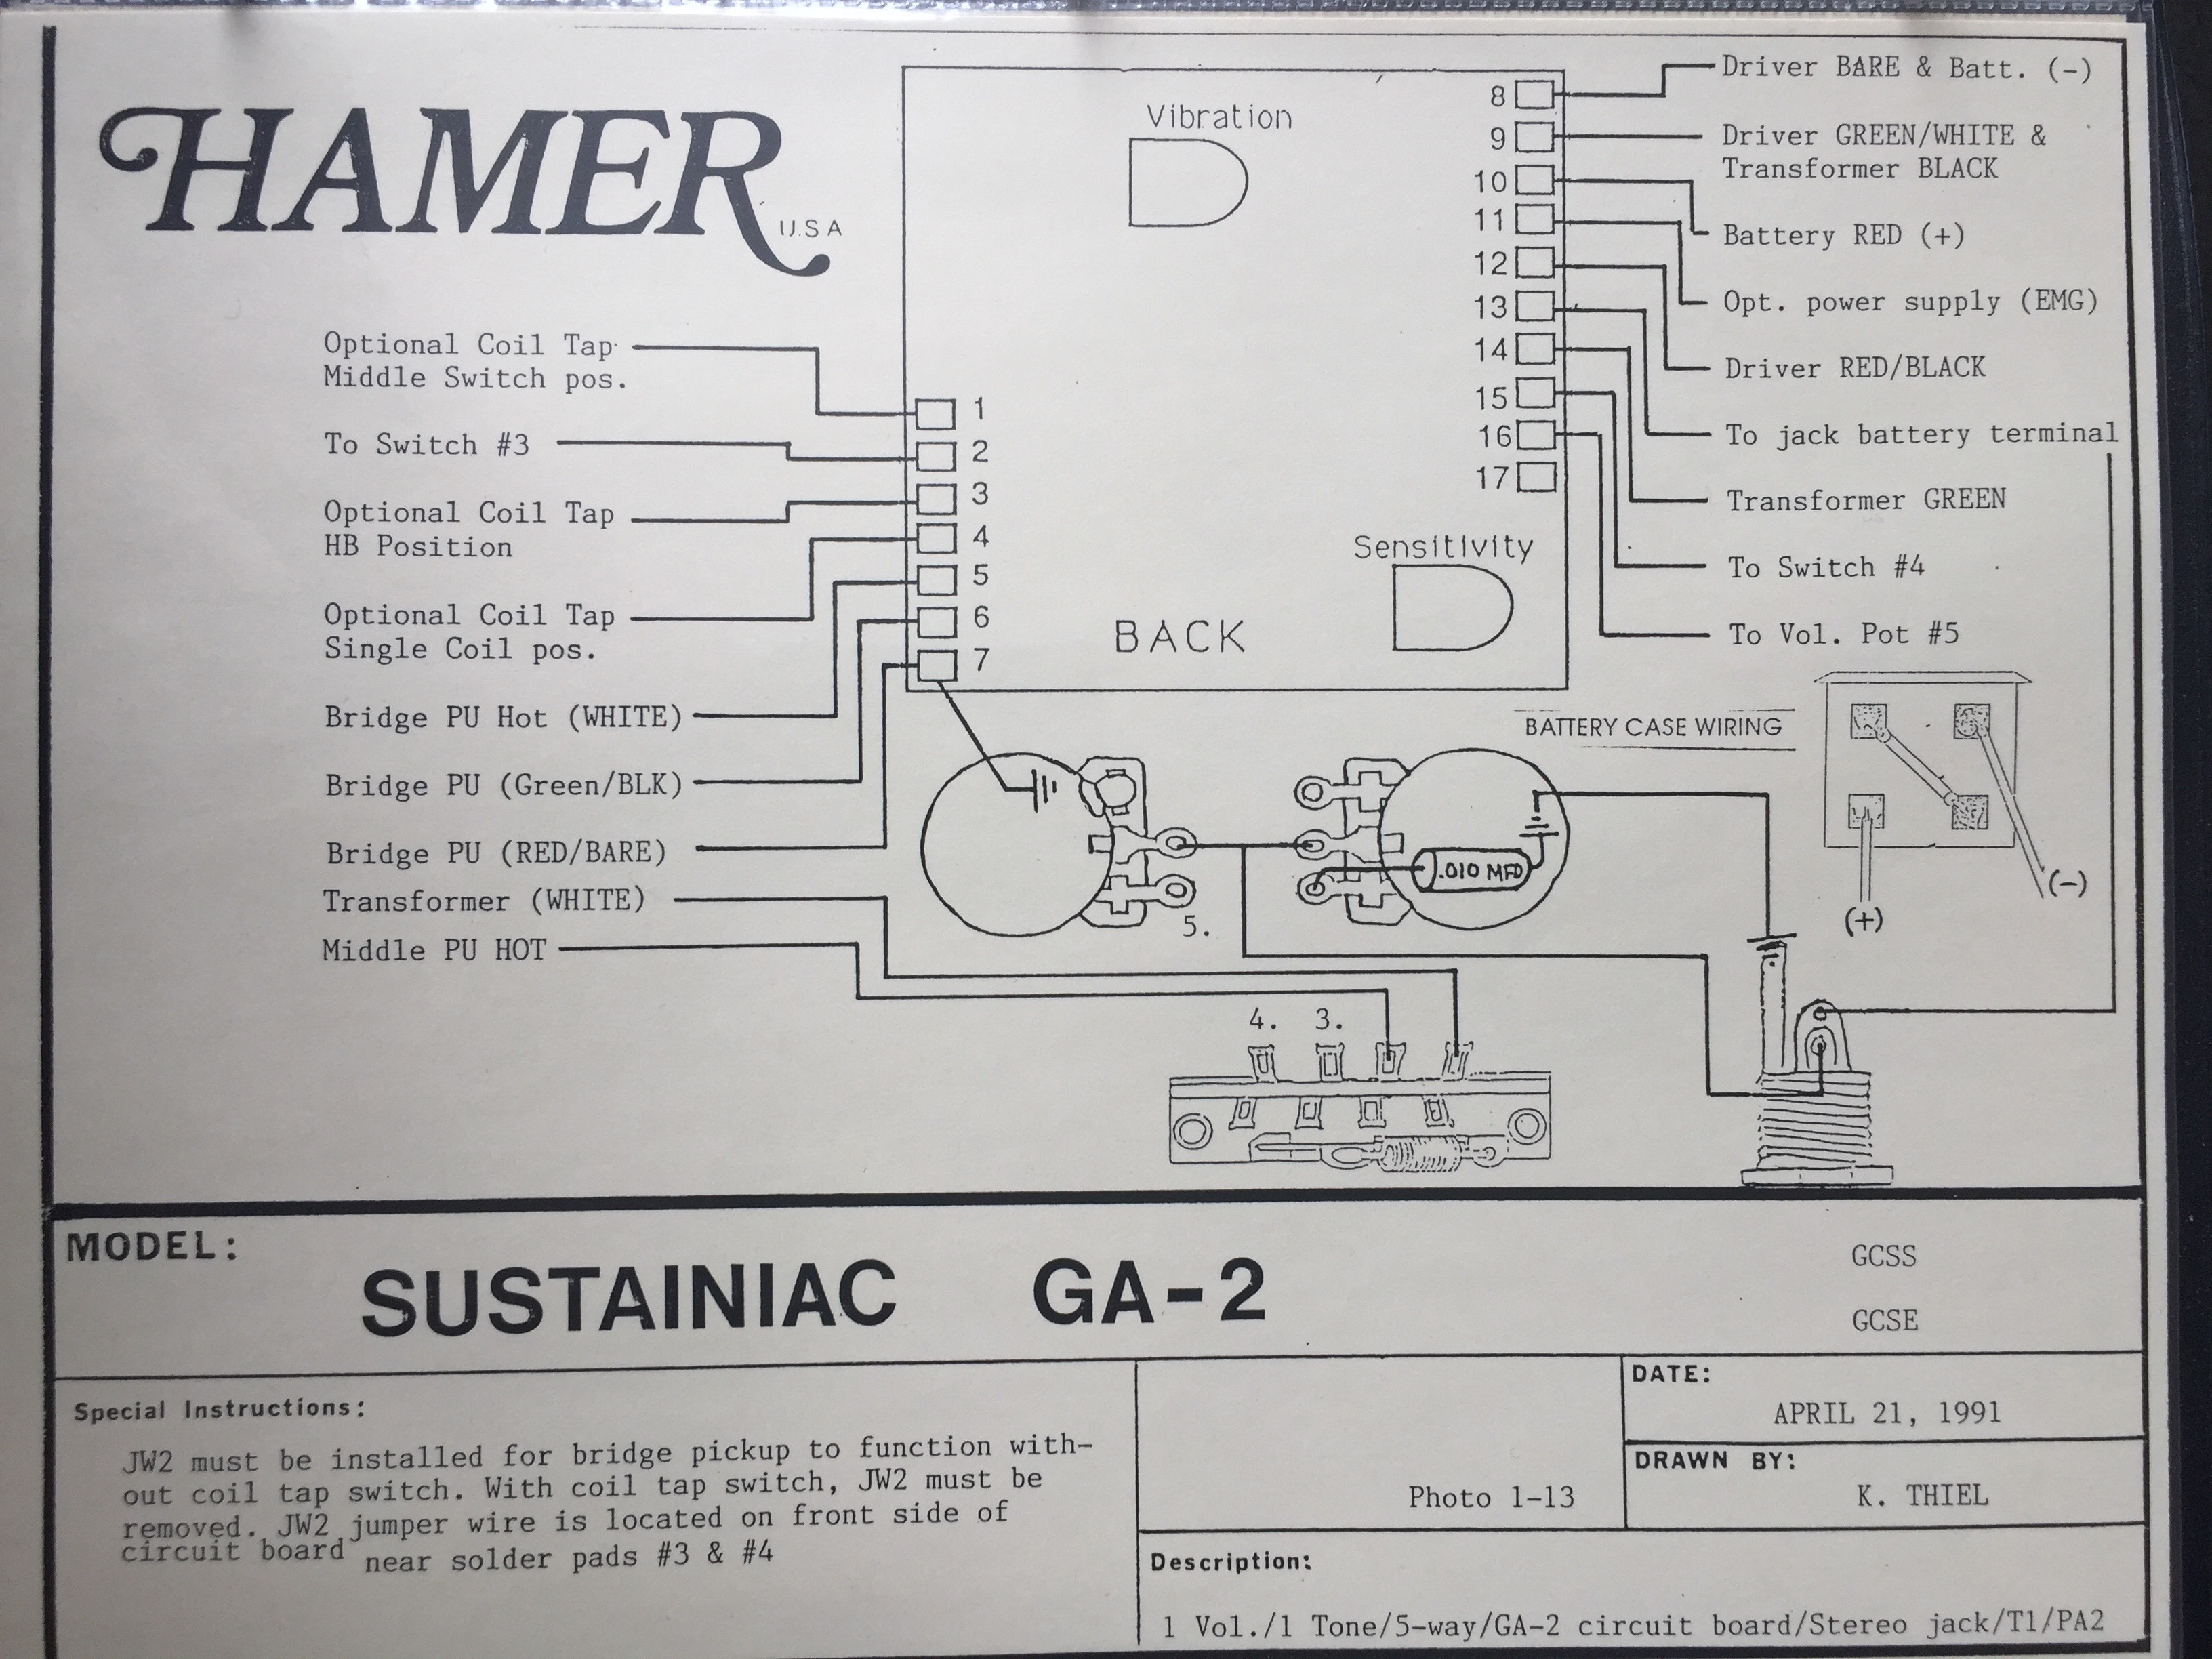 Hamer Chaparral Wiring Diagram Fan Club Messageboard Schematics 2 Volume 1 Tone And For Anyone With The Other Later Sustainiac Circuit I Have This